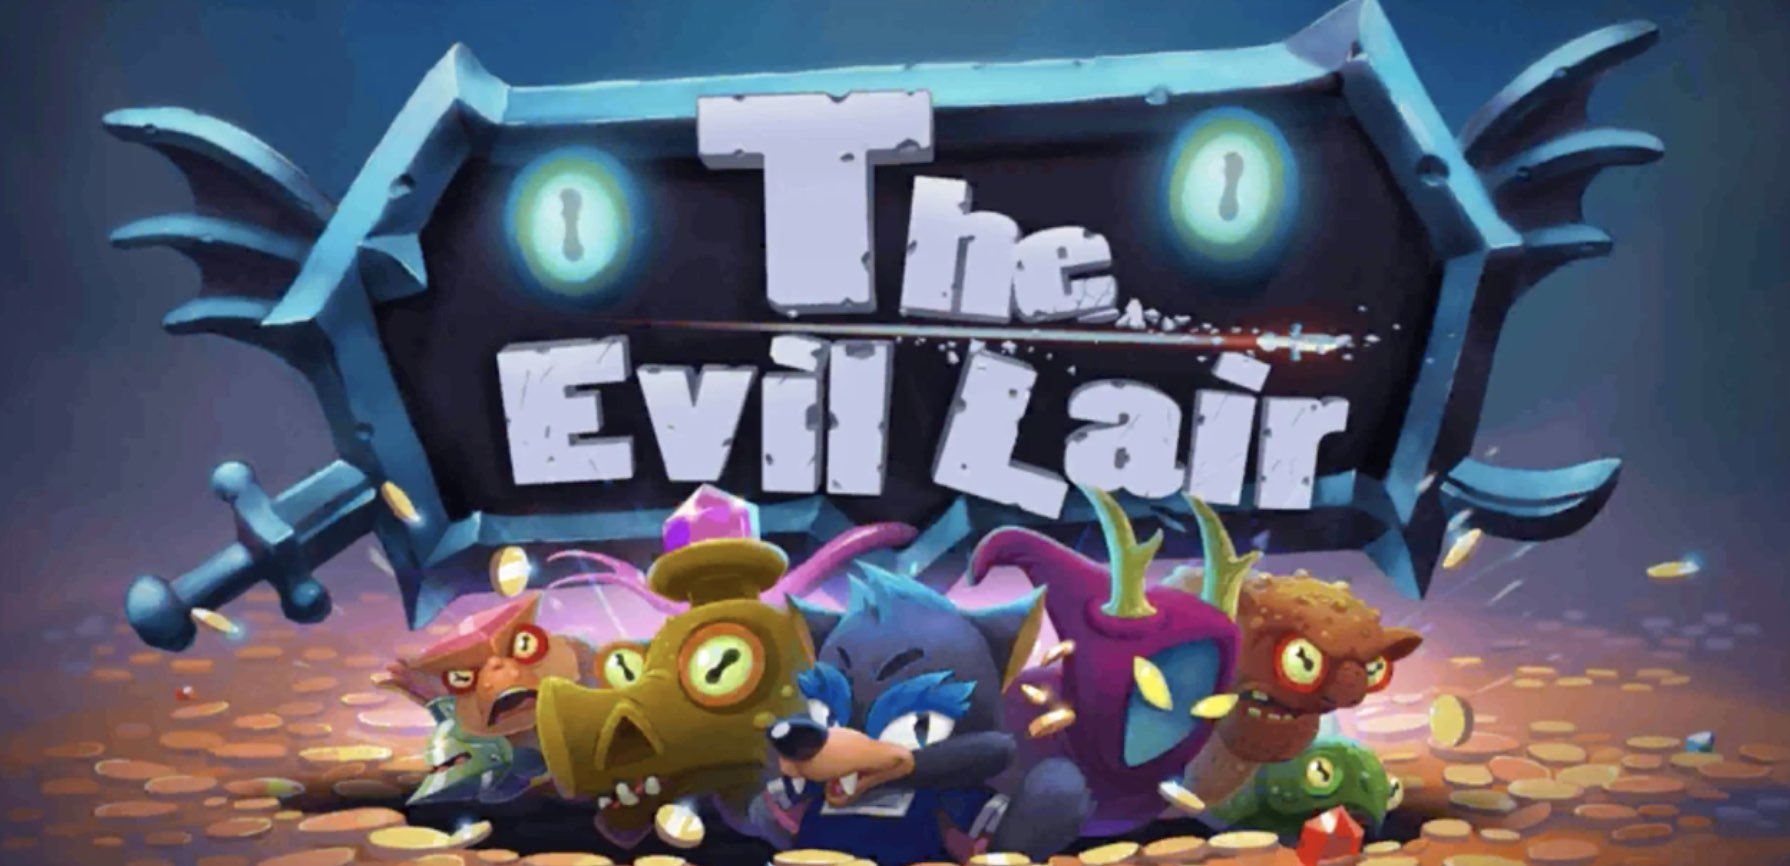 The Evil Lair hack